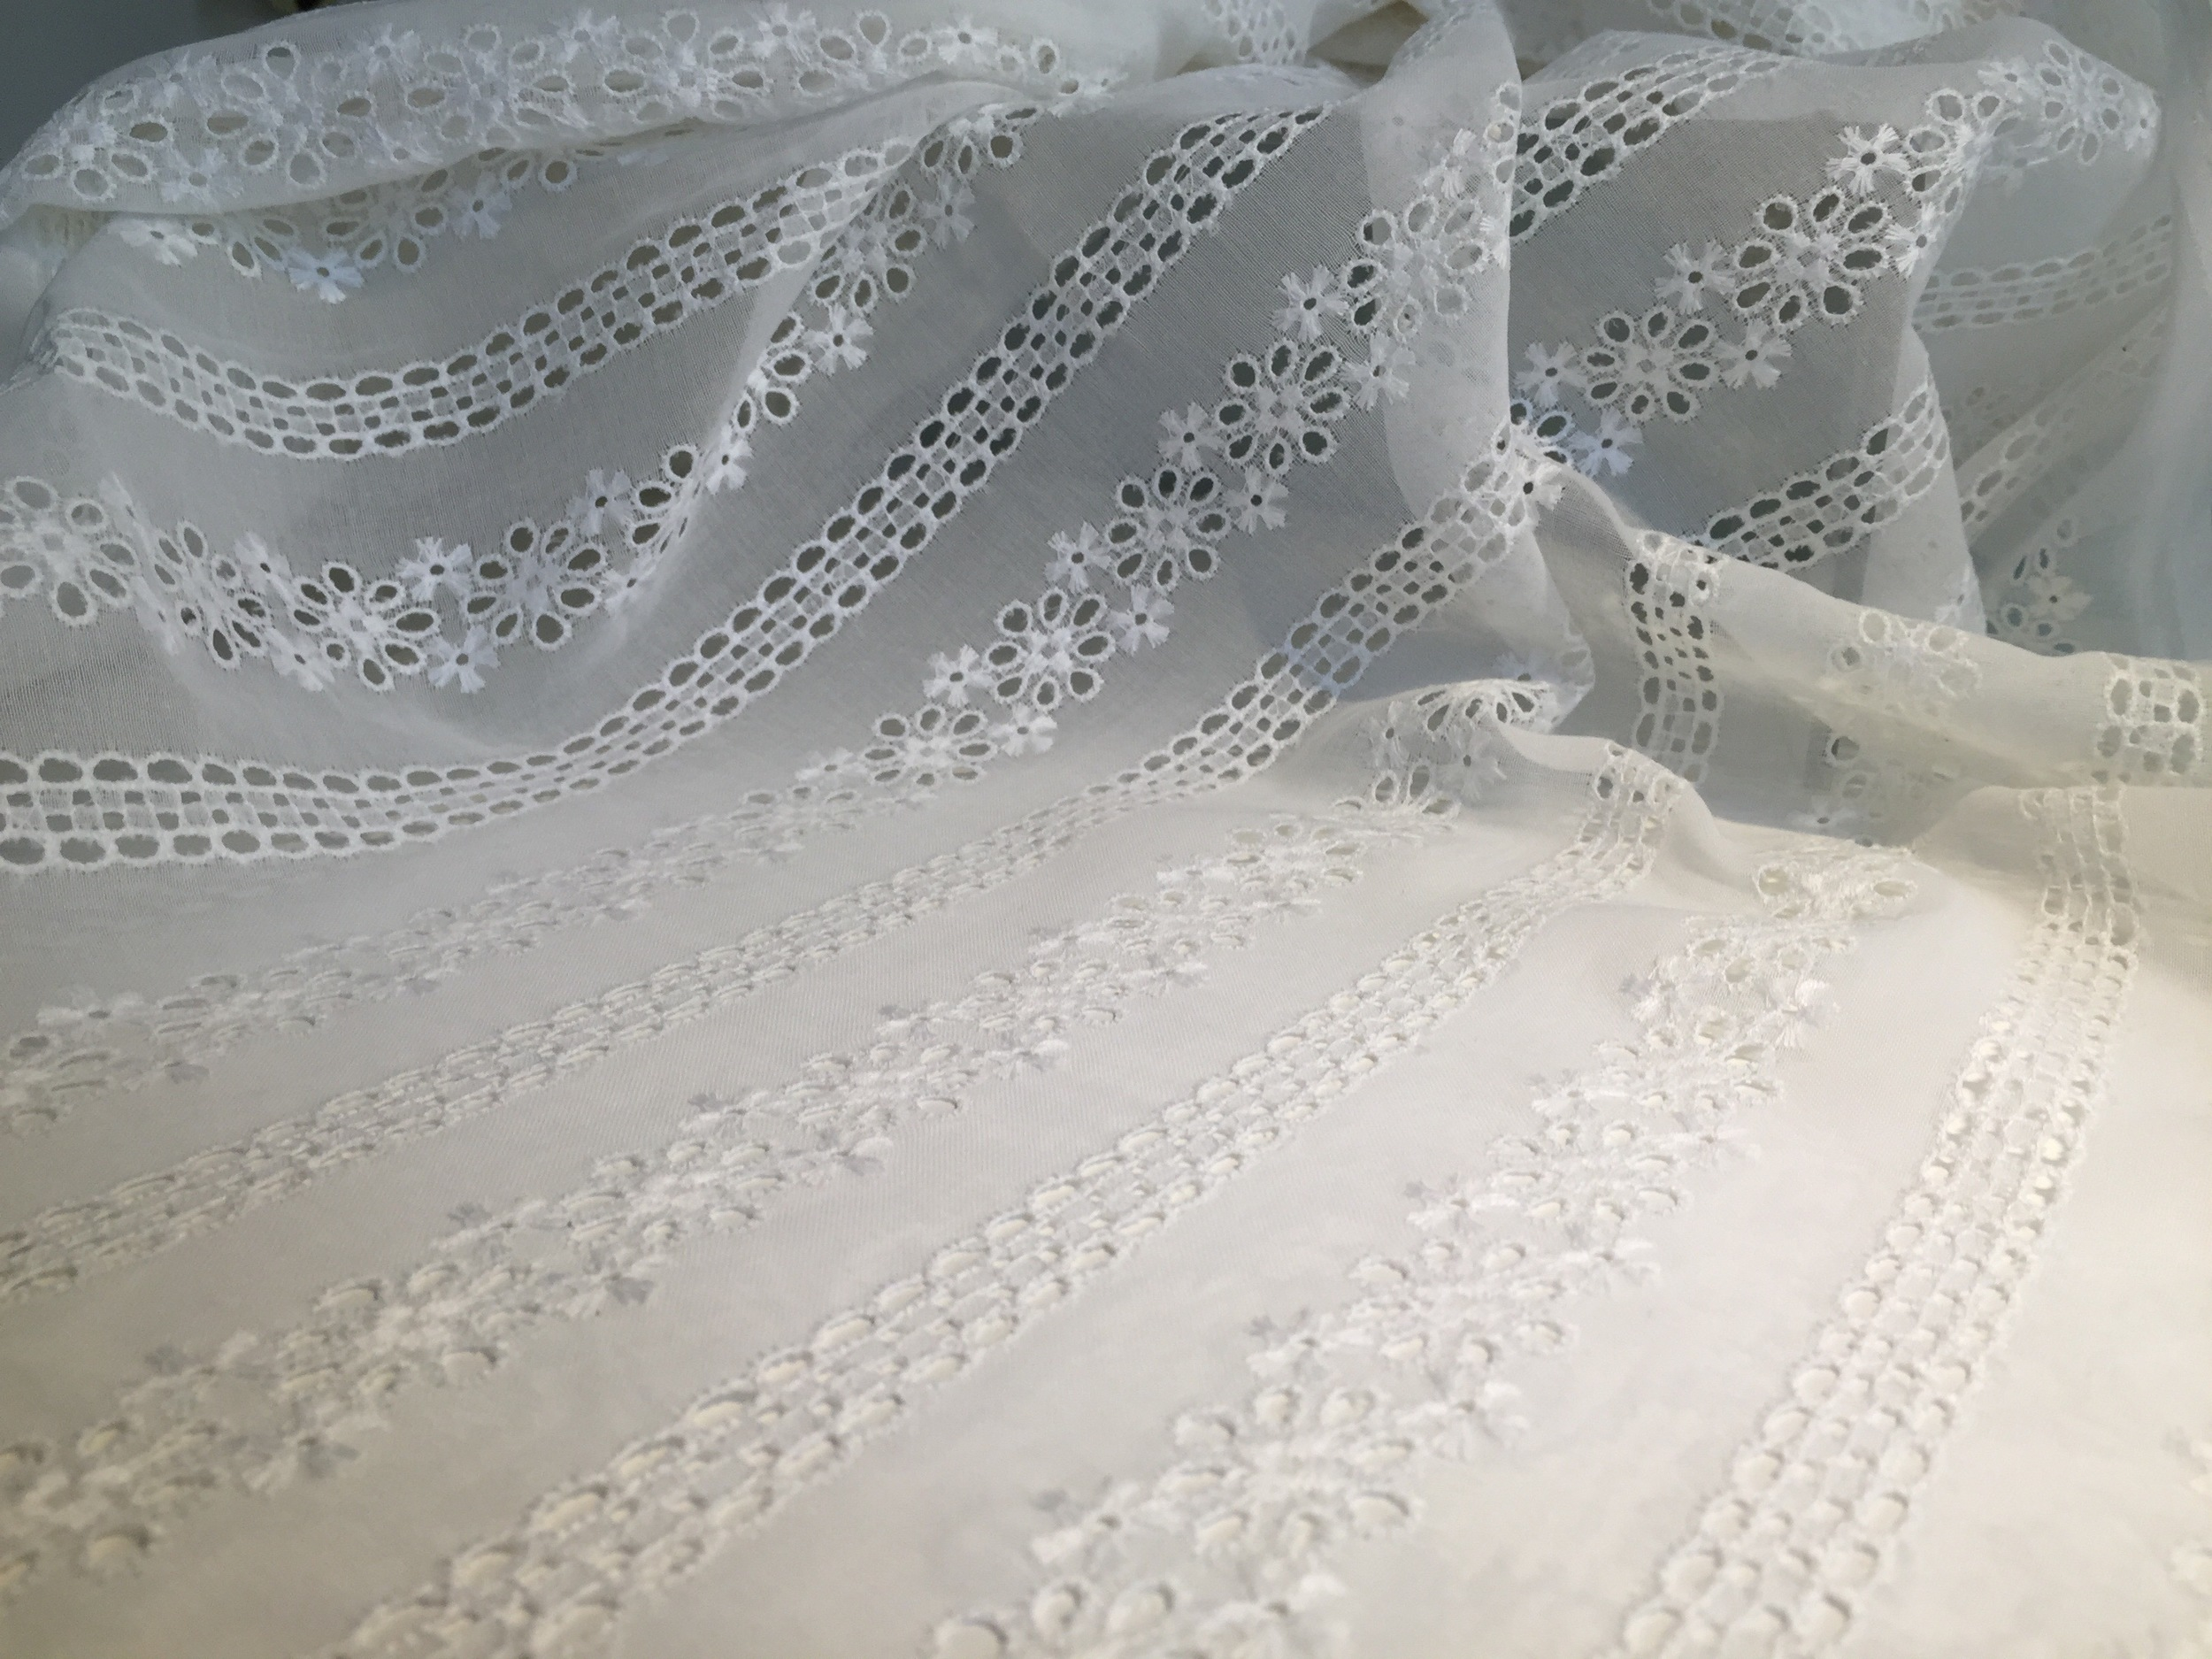 Broderie Anglaise: a light but solid fabric (like a cotton voile)which is embroidered with a pattern composed of small round or oval holes which are bound in overcast (buttonhole) stitches. These little holes, commonly known as eyelets, can be accompanied by embroidered details, like the small flowers seen above. This style originated in the 16th century in Eastern Europe, but was popularized in the Victorian era in England.